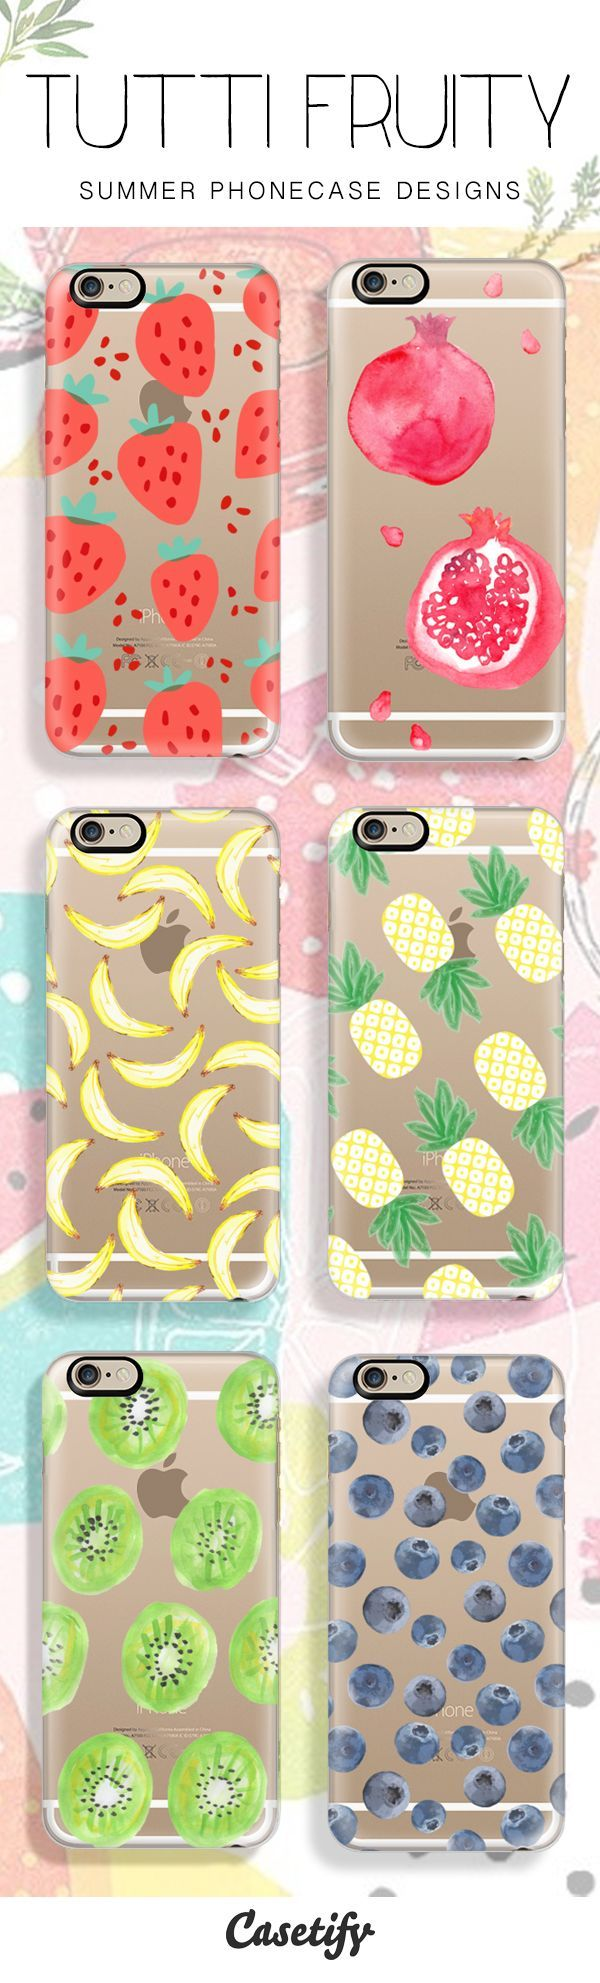 6 All time favourite summer fruit protective iPhone 6 phone cases | Click through to see more fruity iphone phone case ideas >>> http://www.casetify.com/artworks/Get8n2KEIm | /casetify/